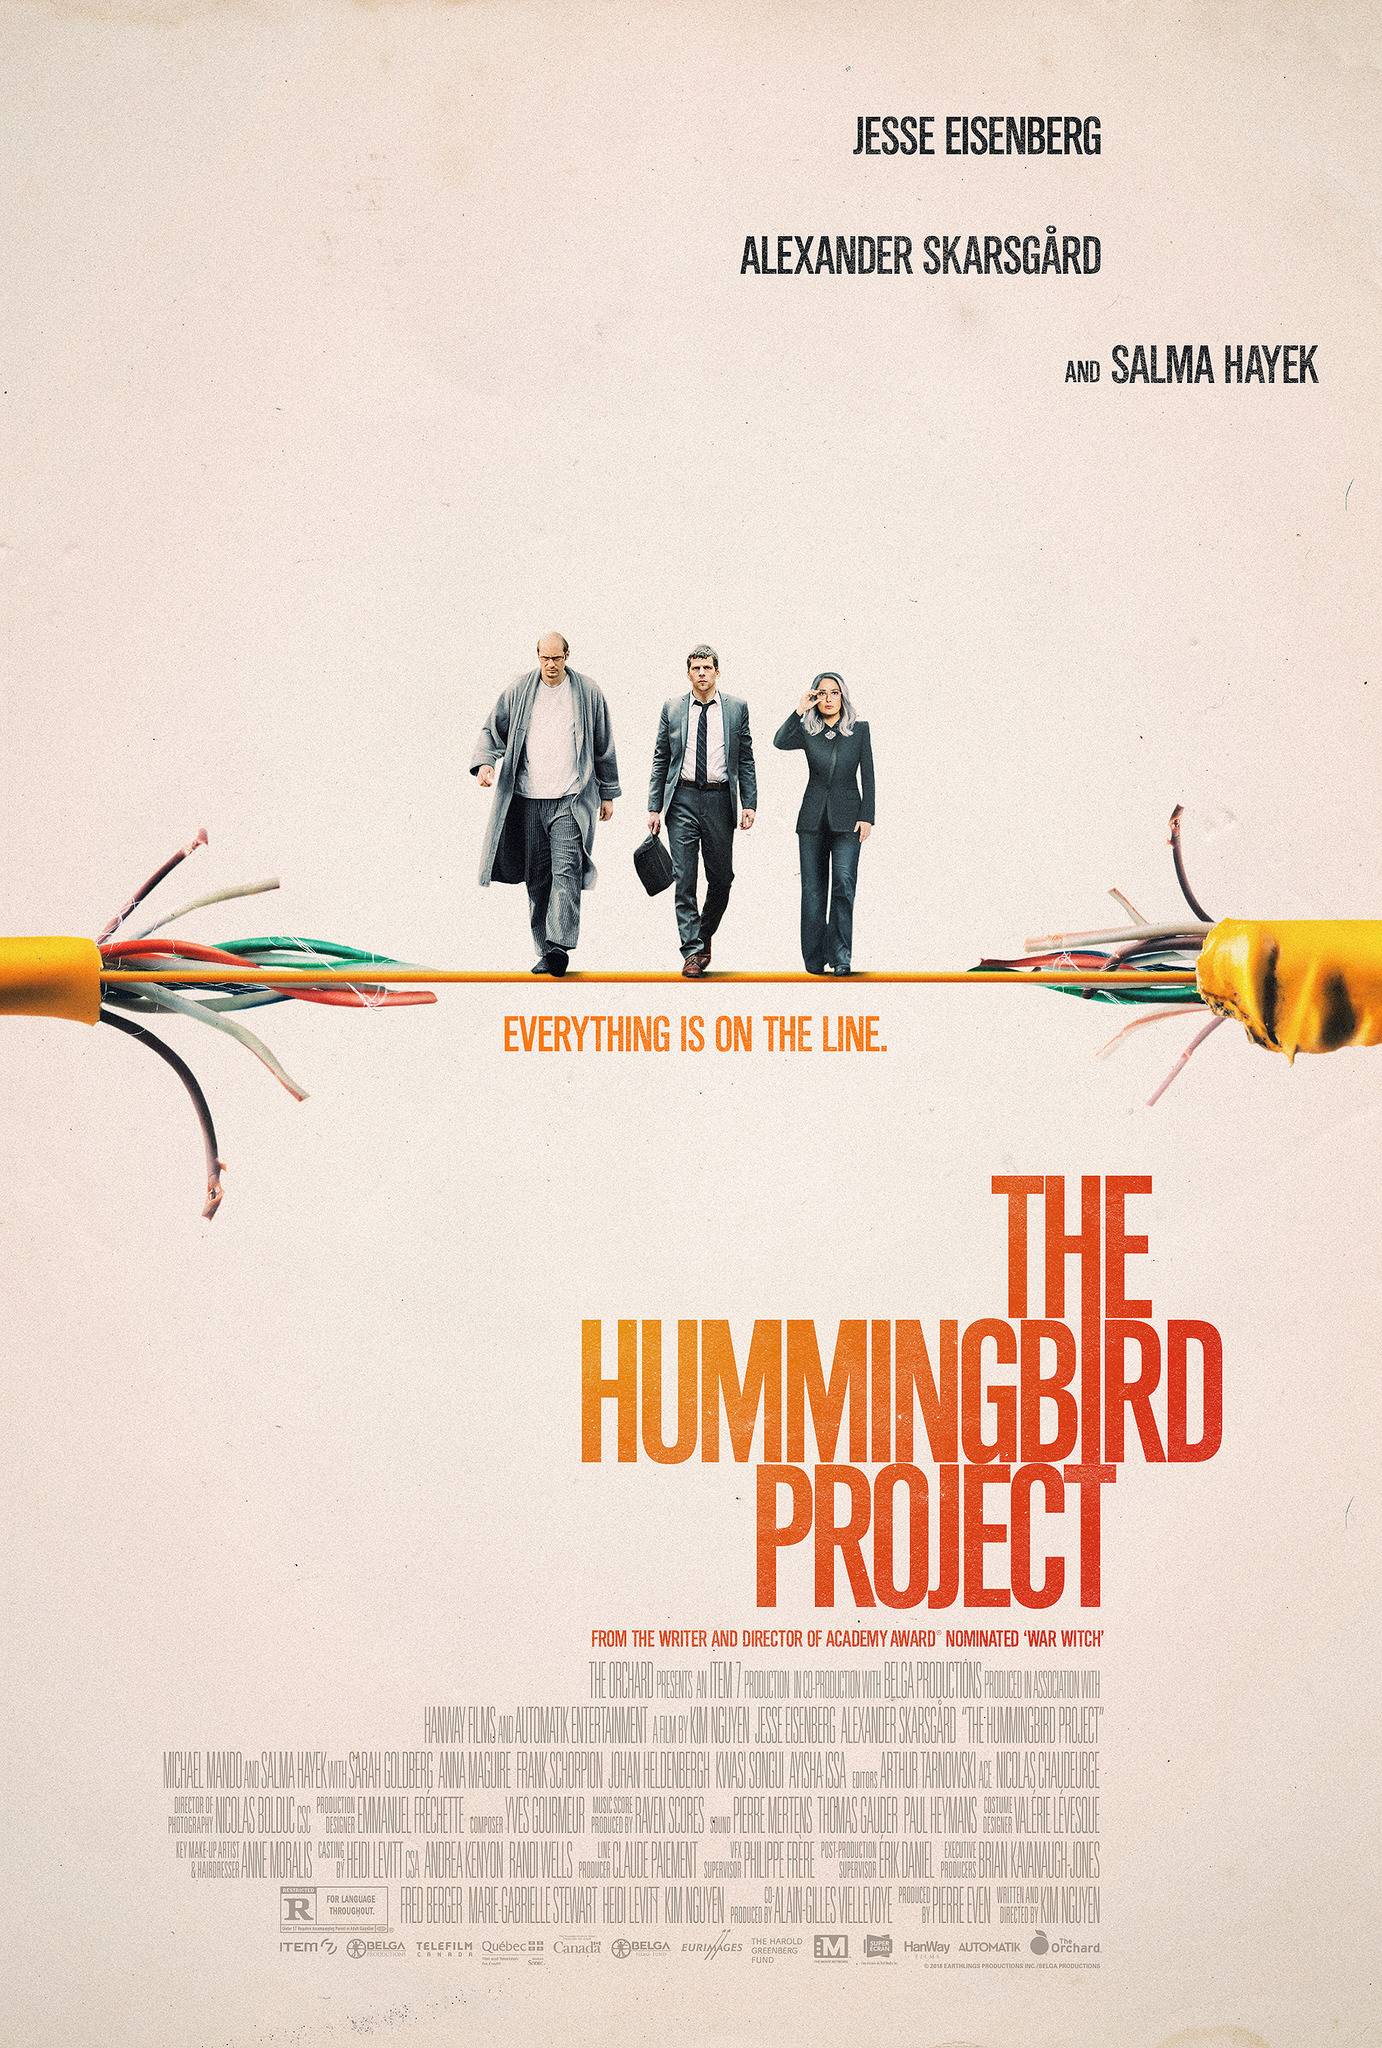 KOLIBRIO PROJEKTAS (2018) / THE HUMMINGBIRD PROJECT